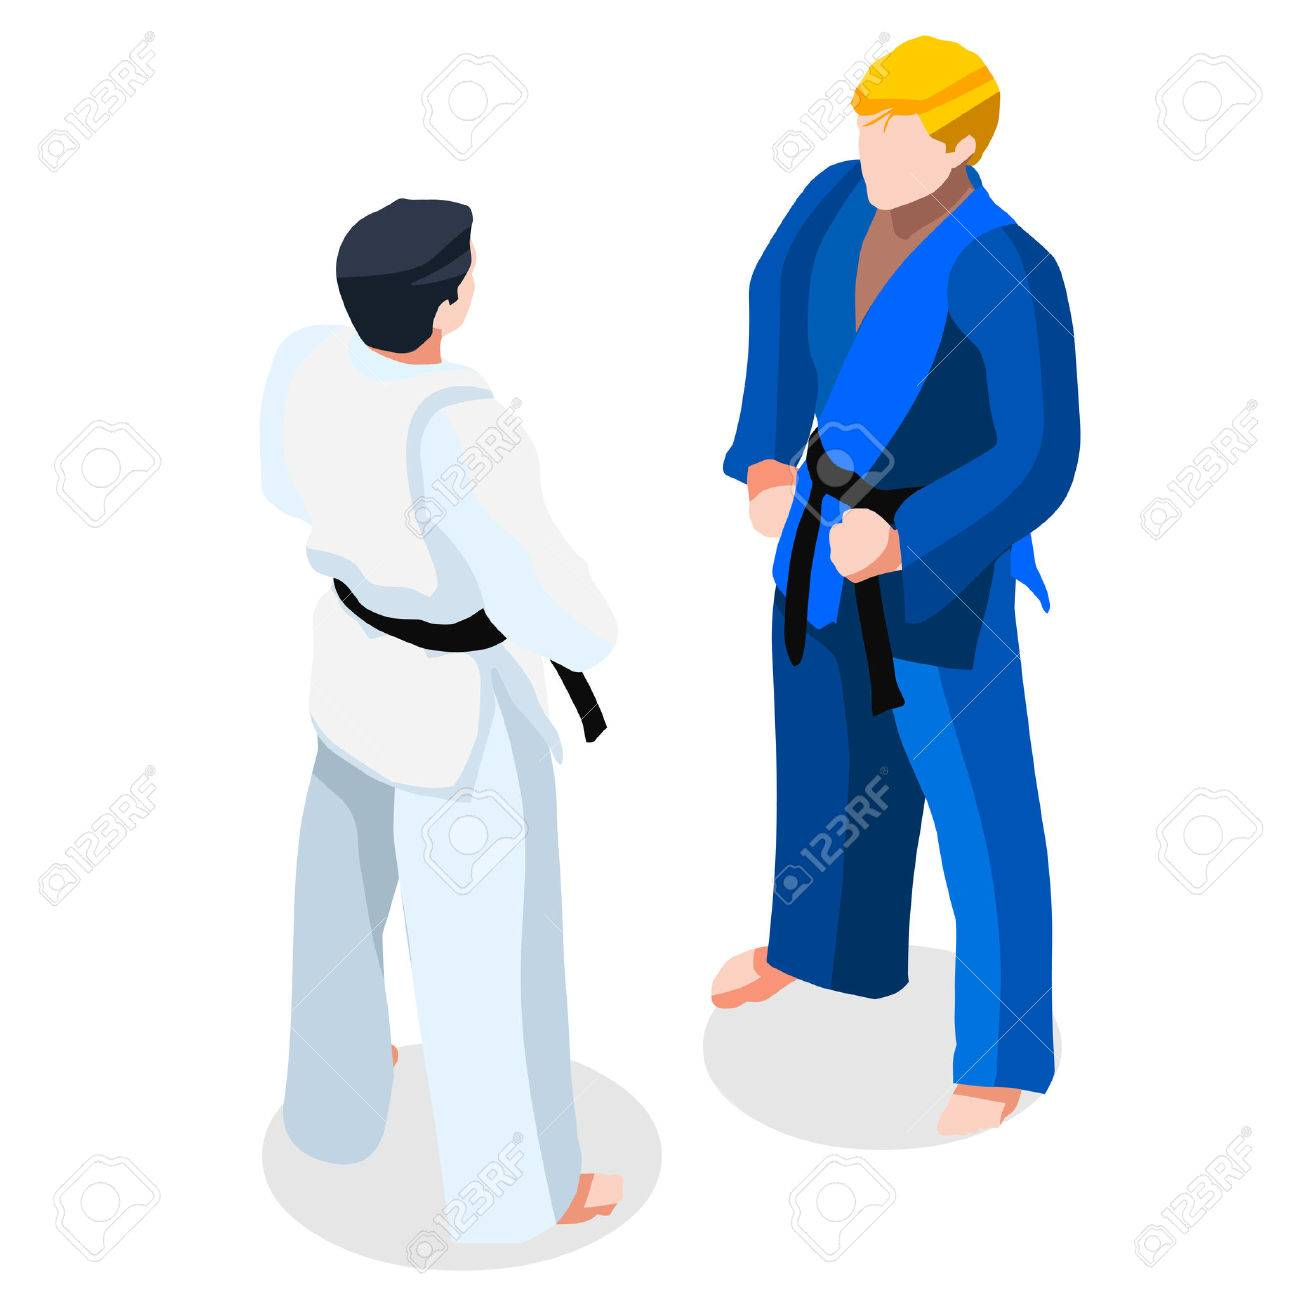 judo karate fight summer games icon set 3d isometric fighting